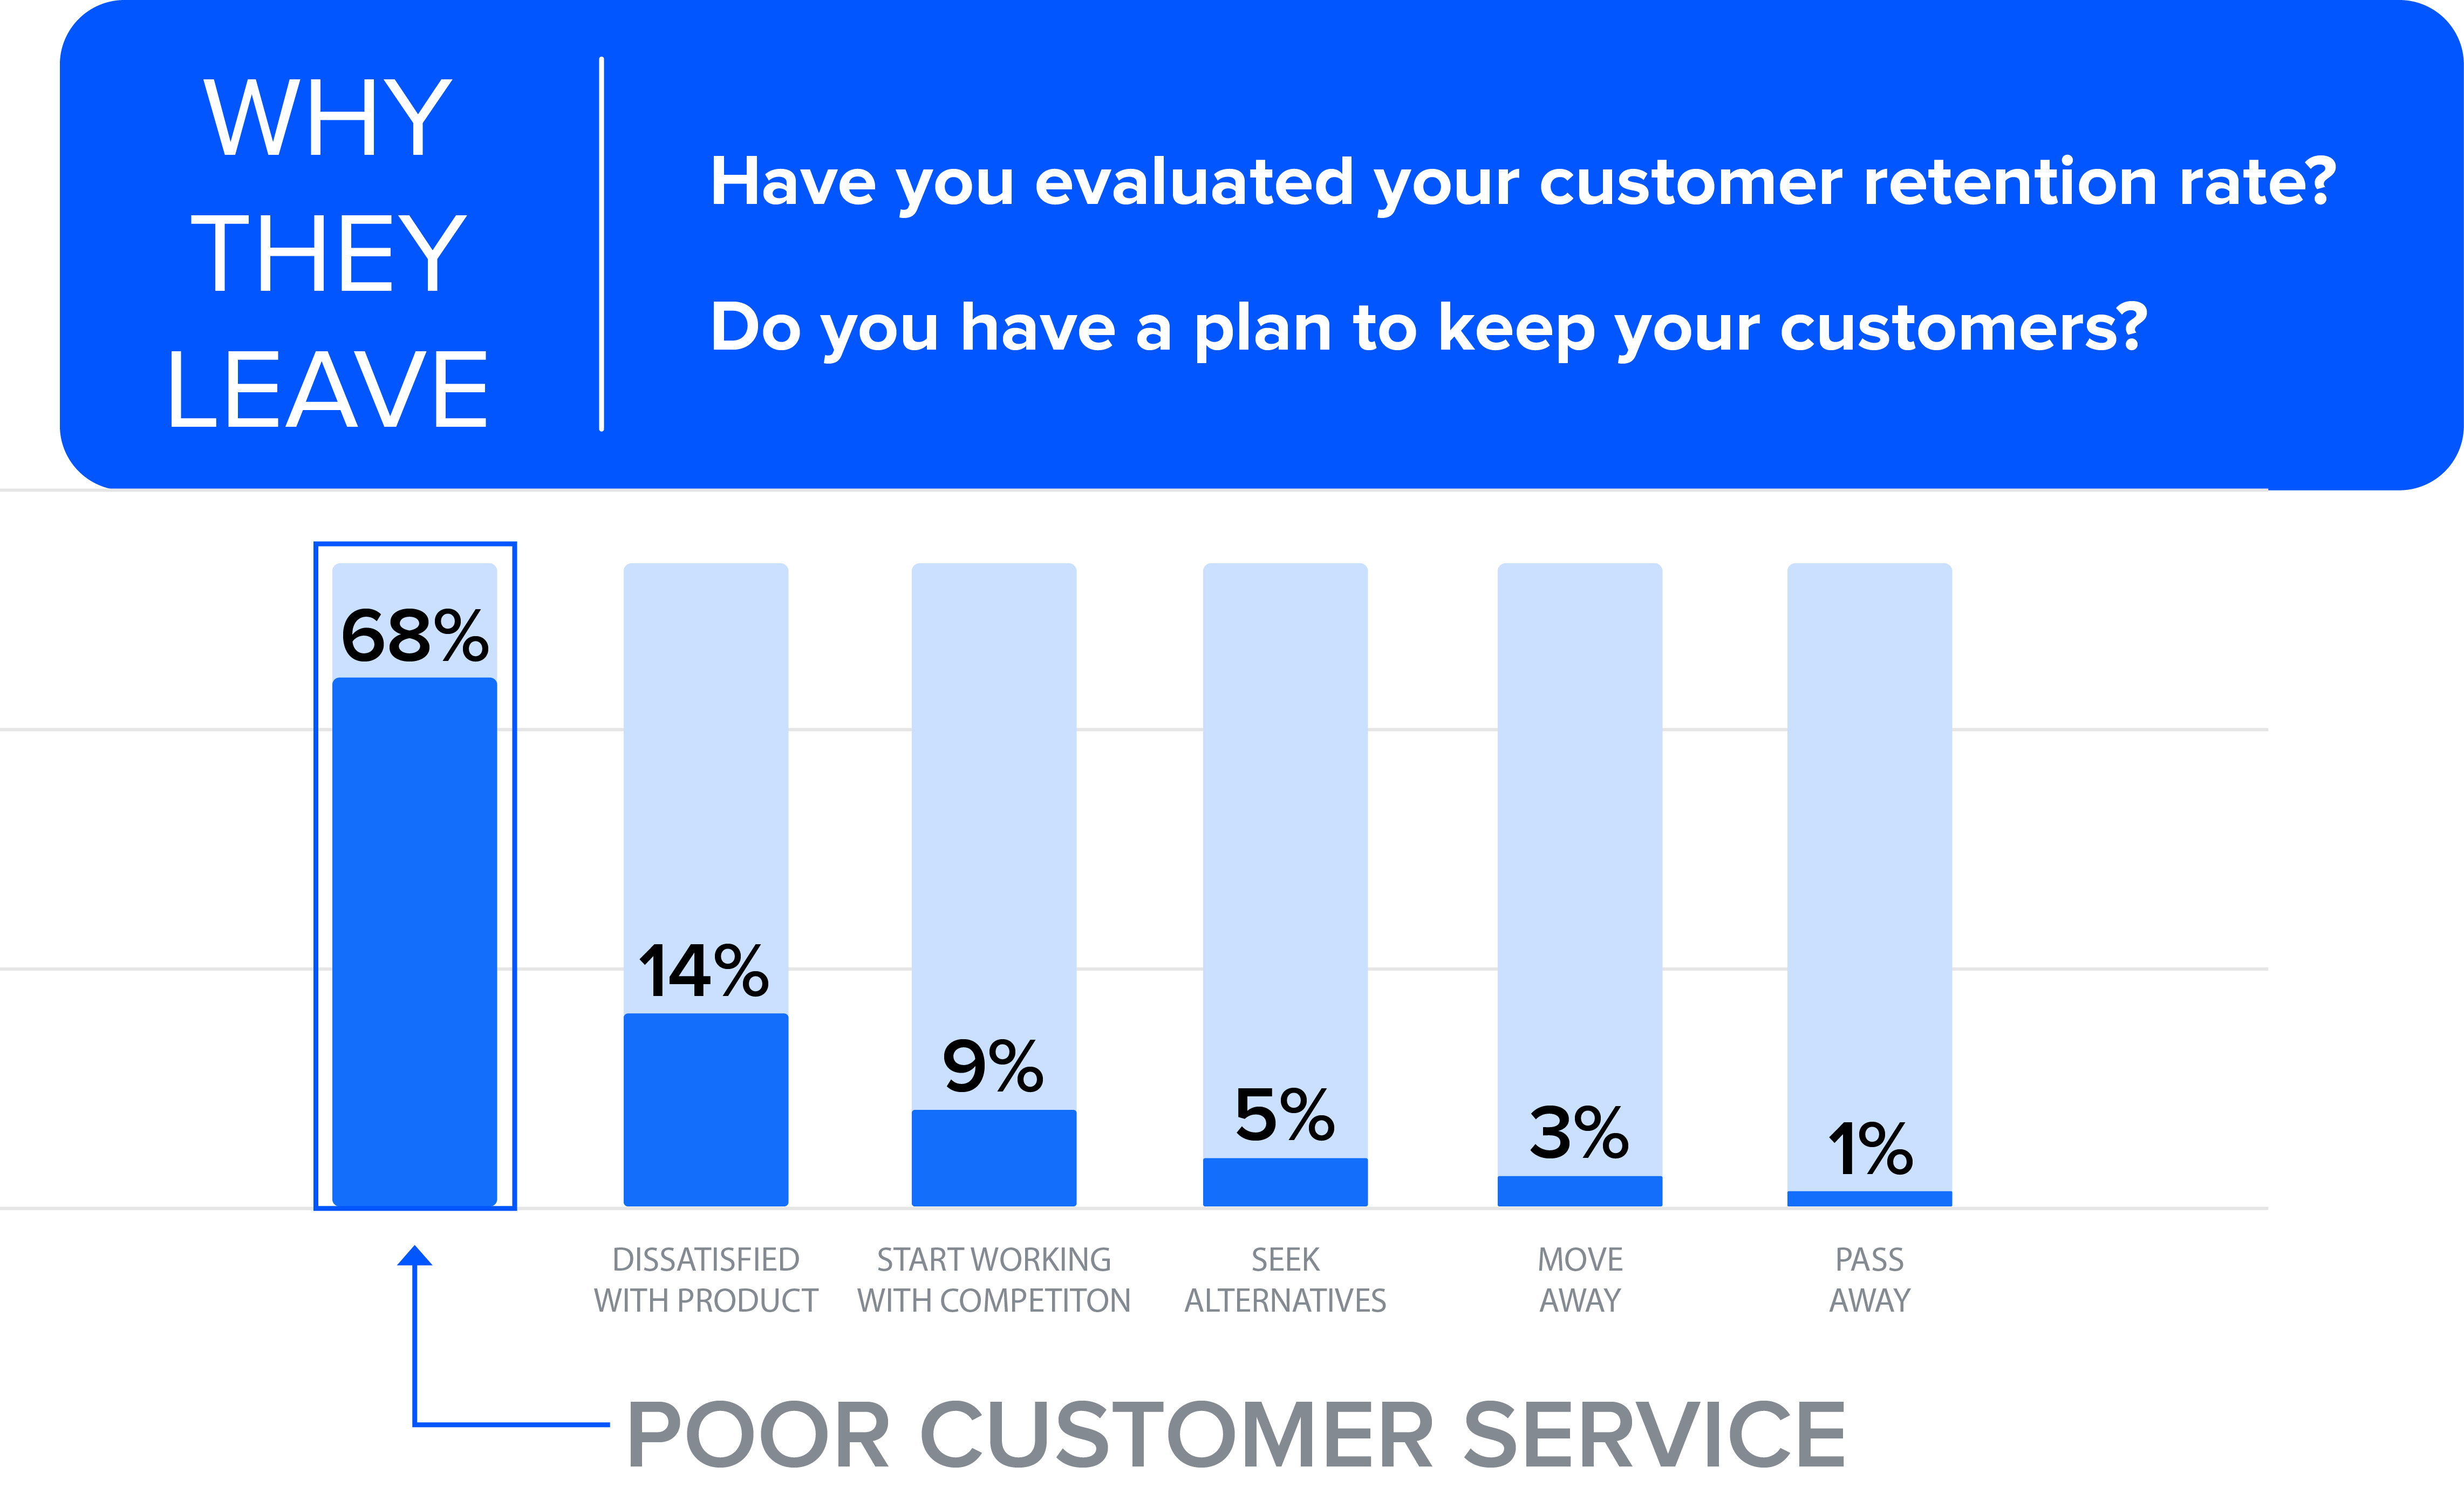 7a169b2d95 ... your customers will have the feeling that you care about them and will  likely stick to your business. A recent study shows that 68% of customers  leave ...